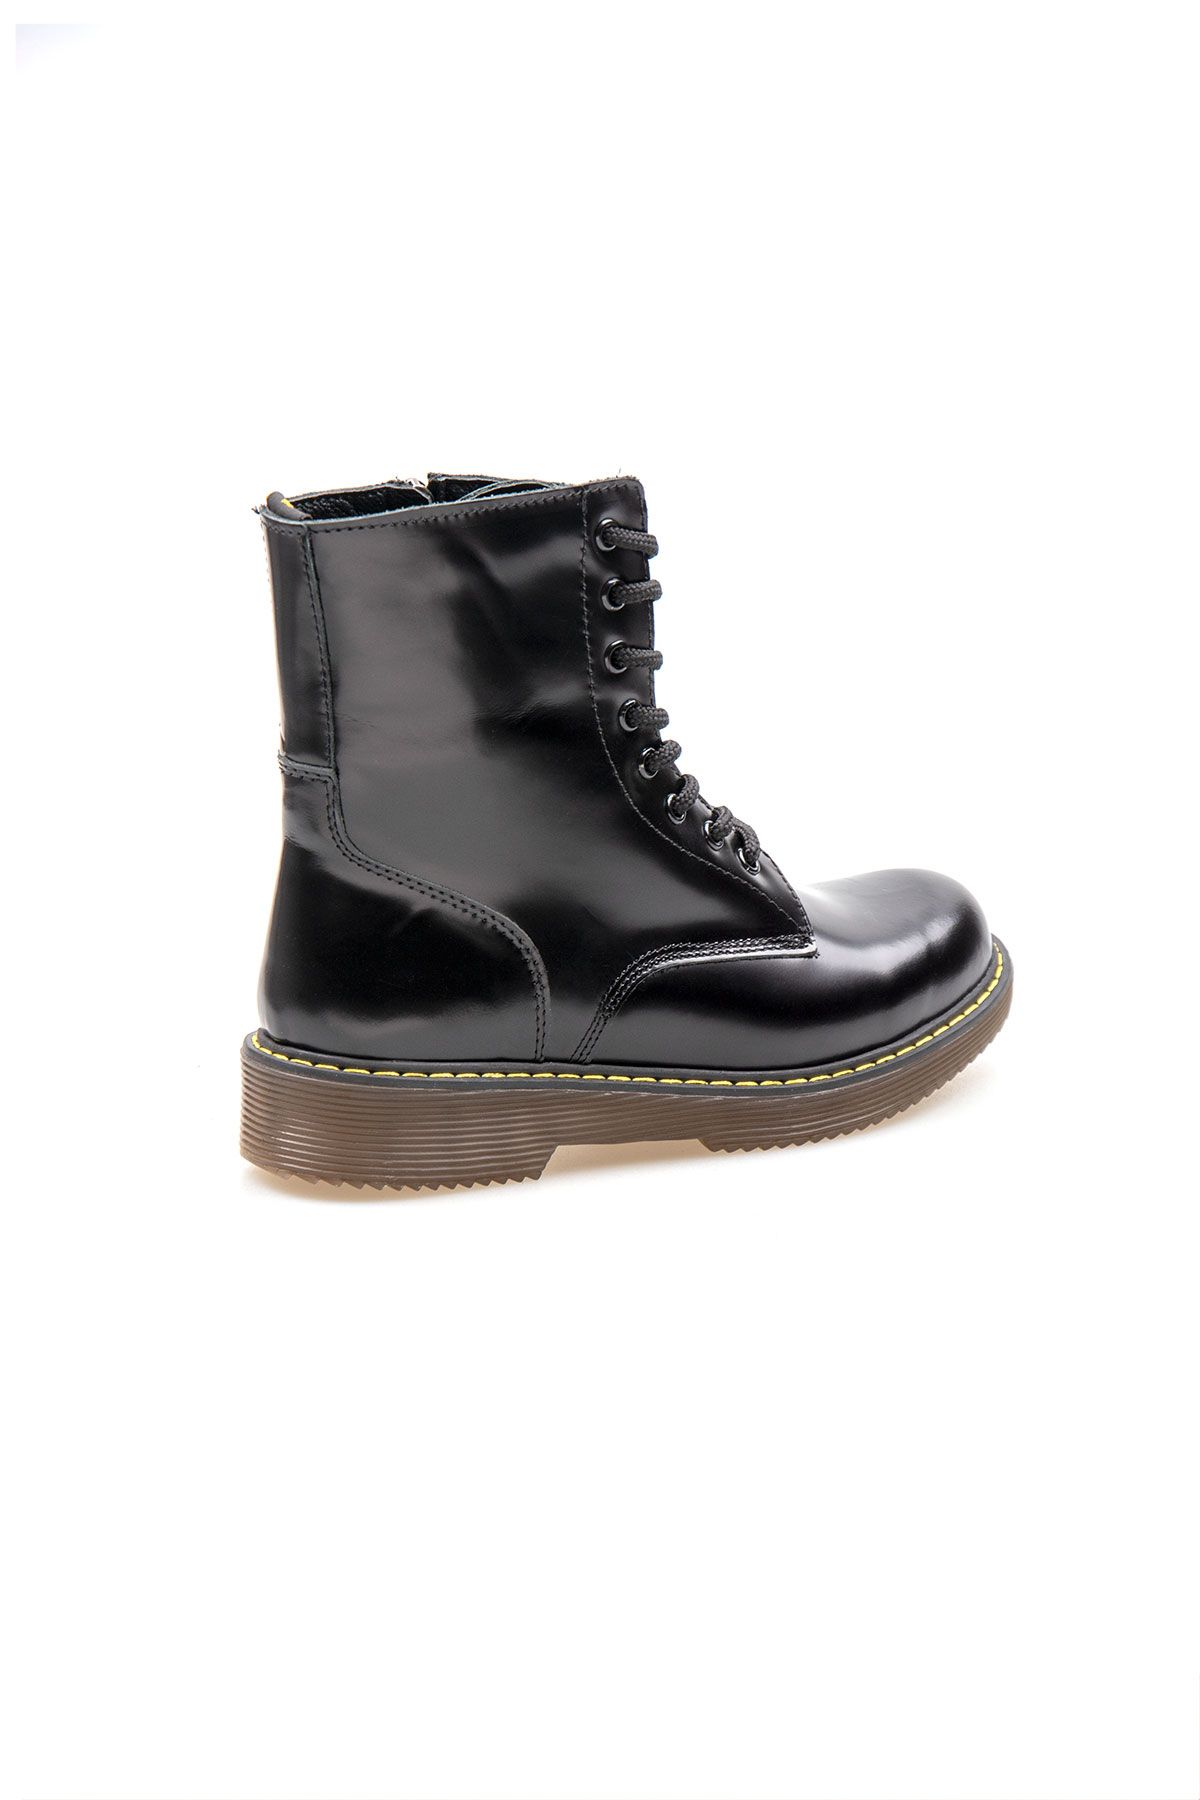 Pegia Genuine Leather Women's Boots 500714 Black